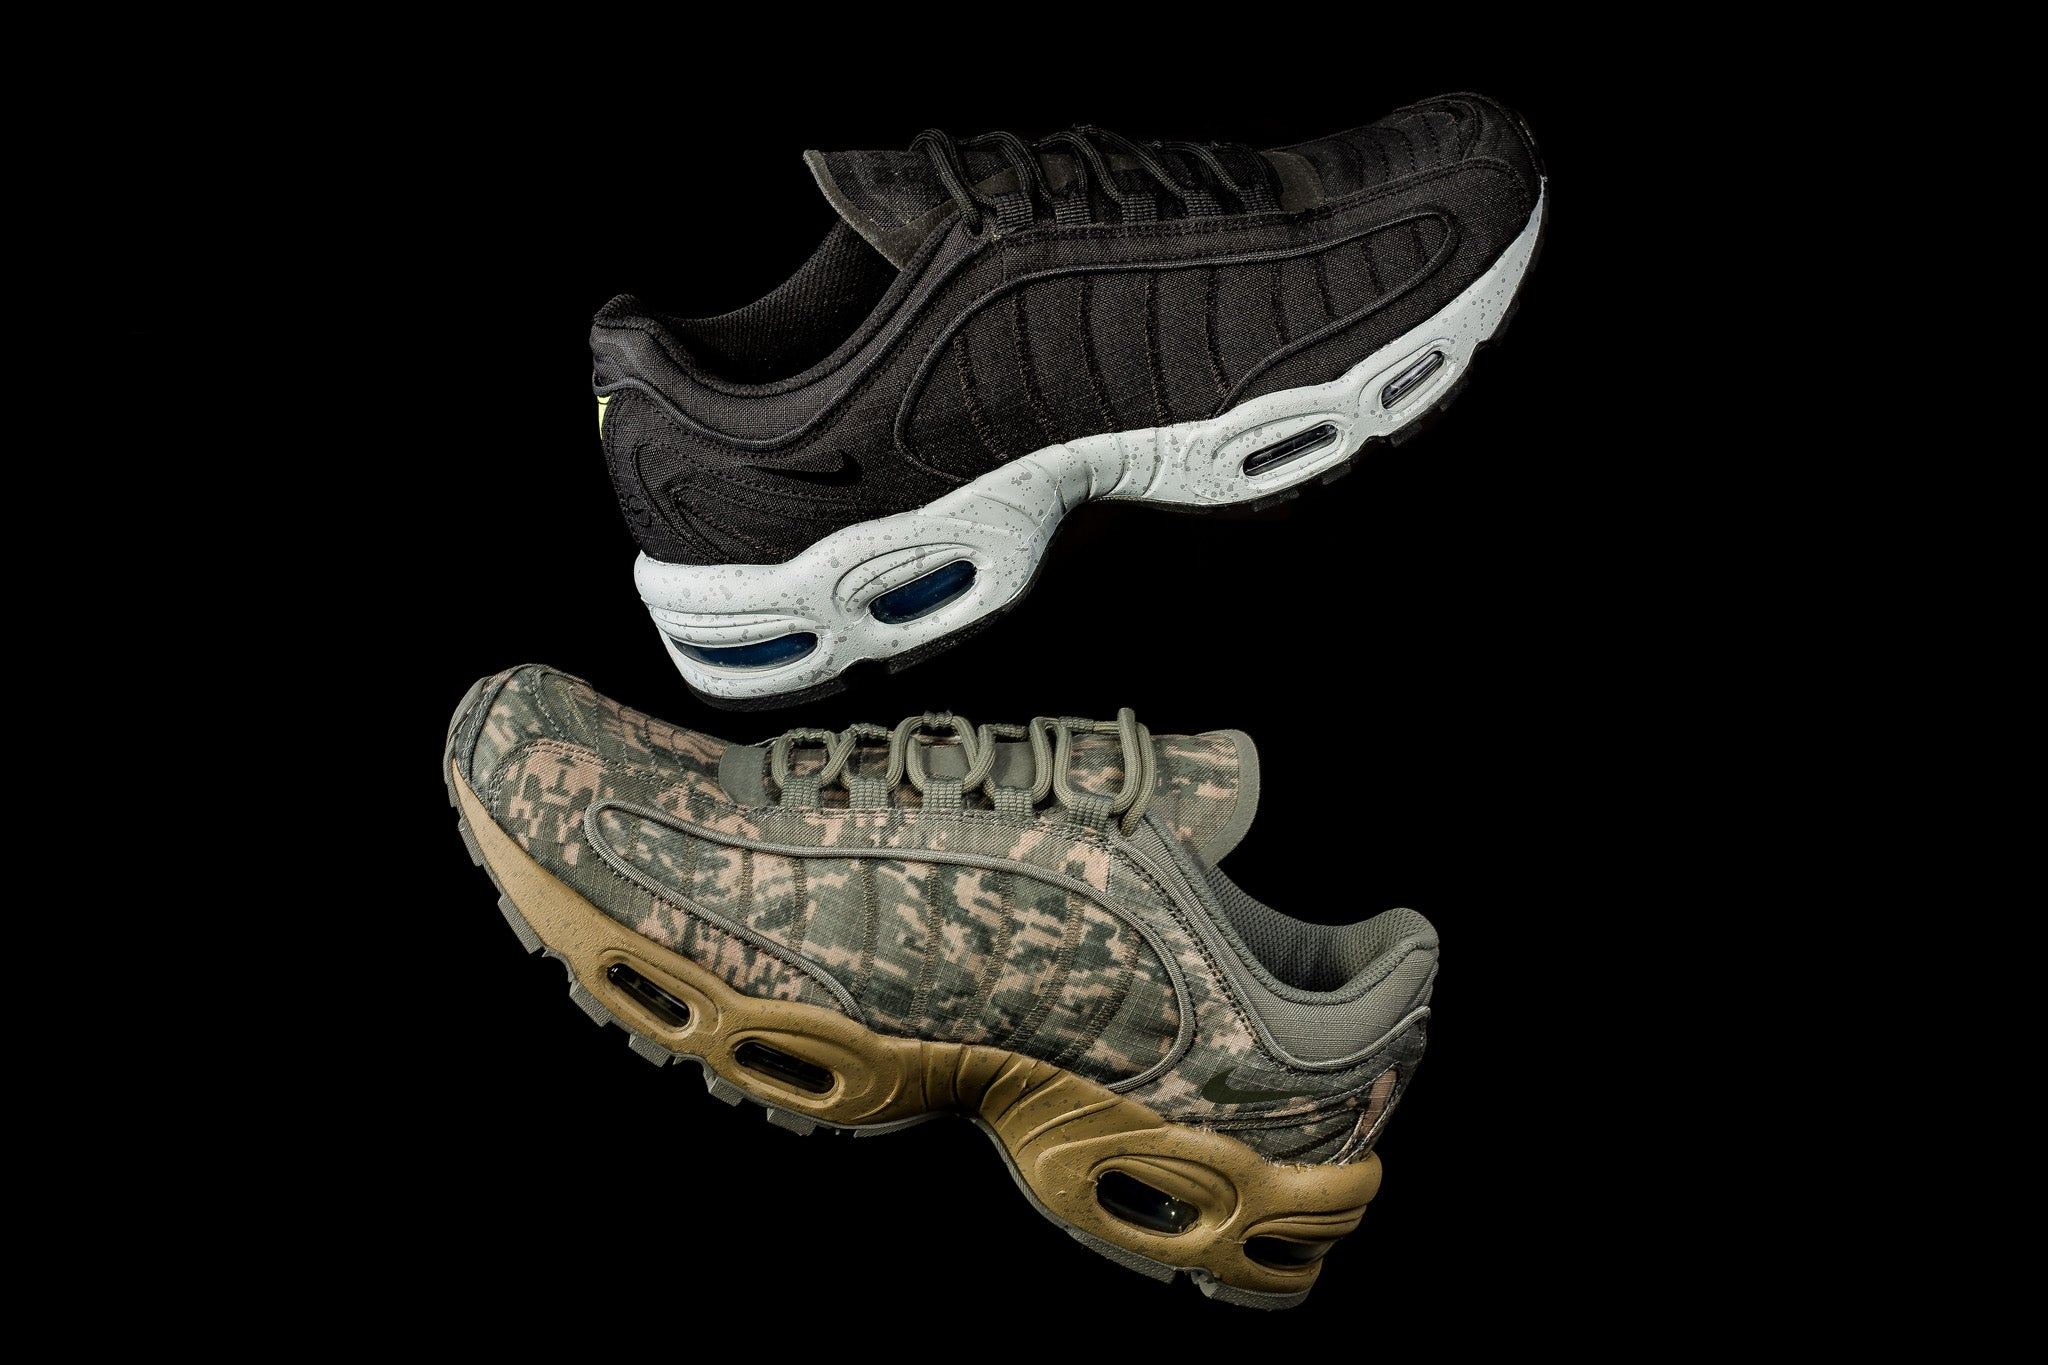 d3c0dfed The Nike Air Max Tailwind IV SP Collection features a durable RipStop  treatment to the upper in a digi-camo pattern on one pair and a solid black  colour ...